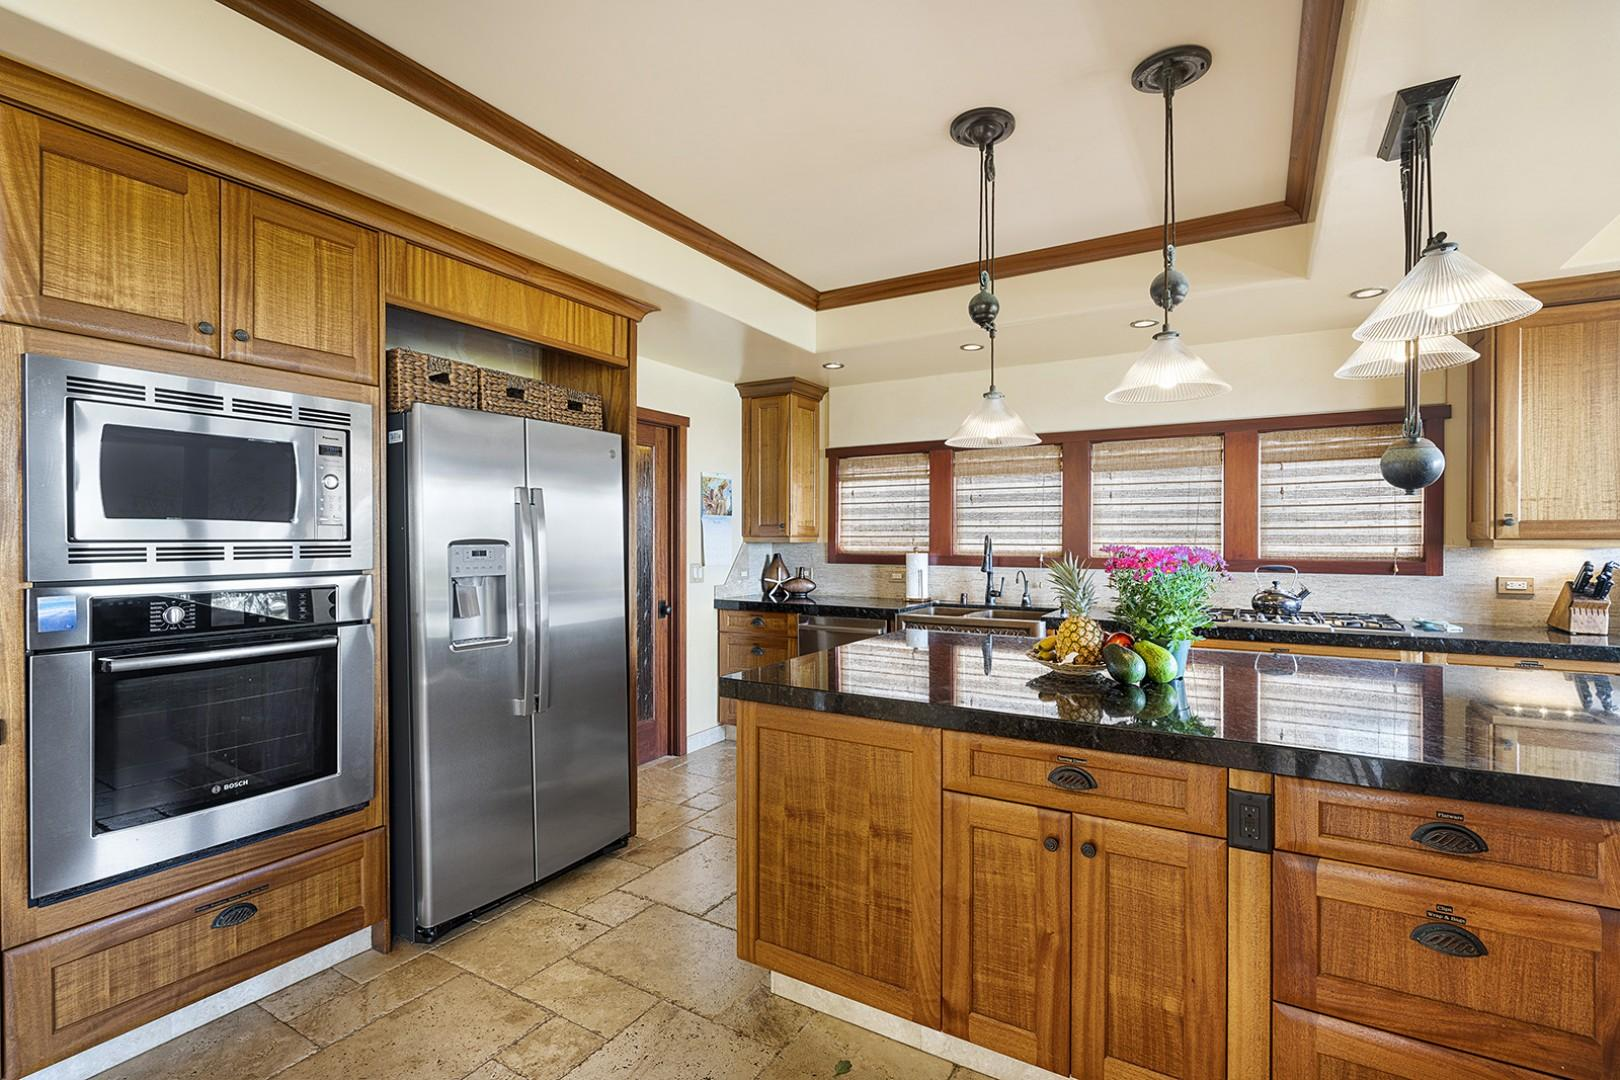 Kitchen features a wine fridge and gas range